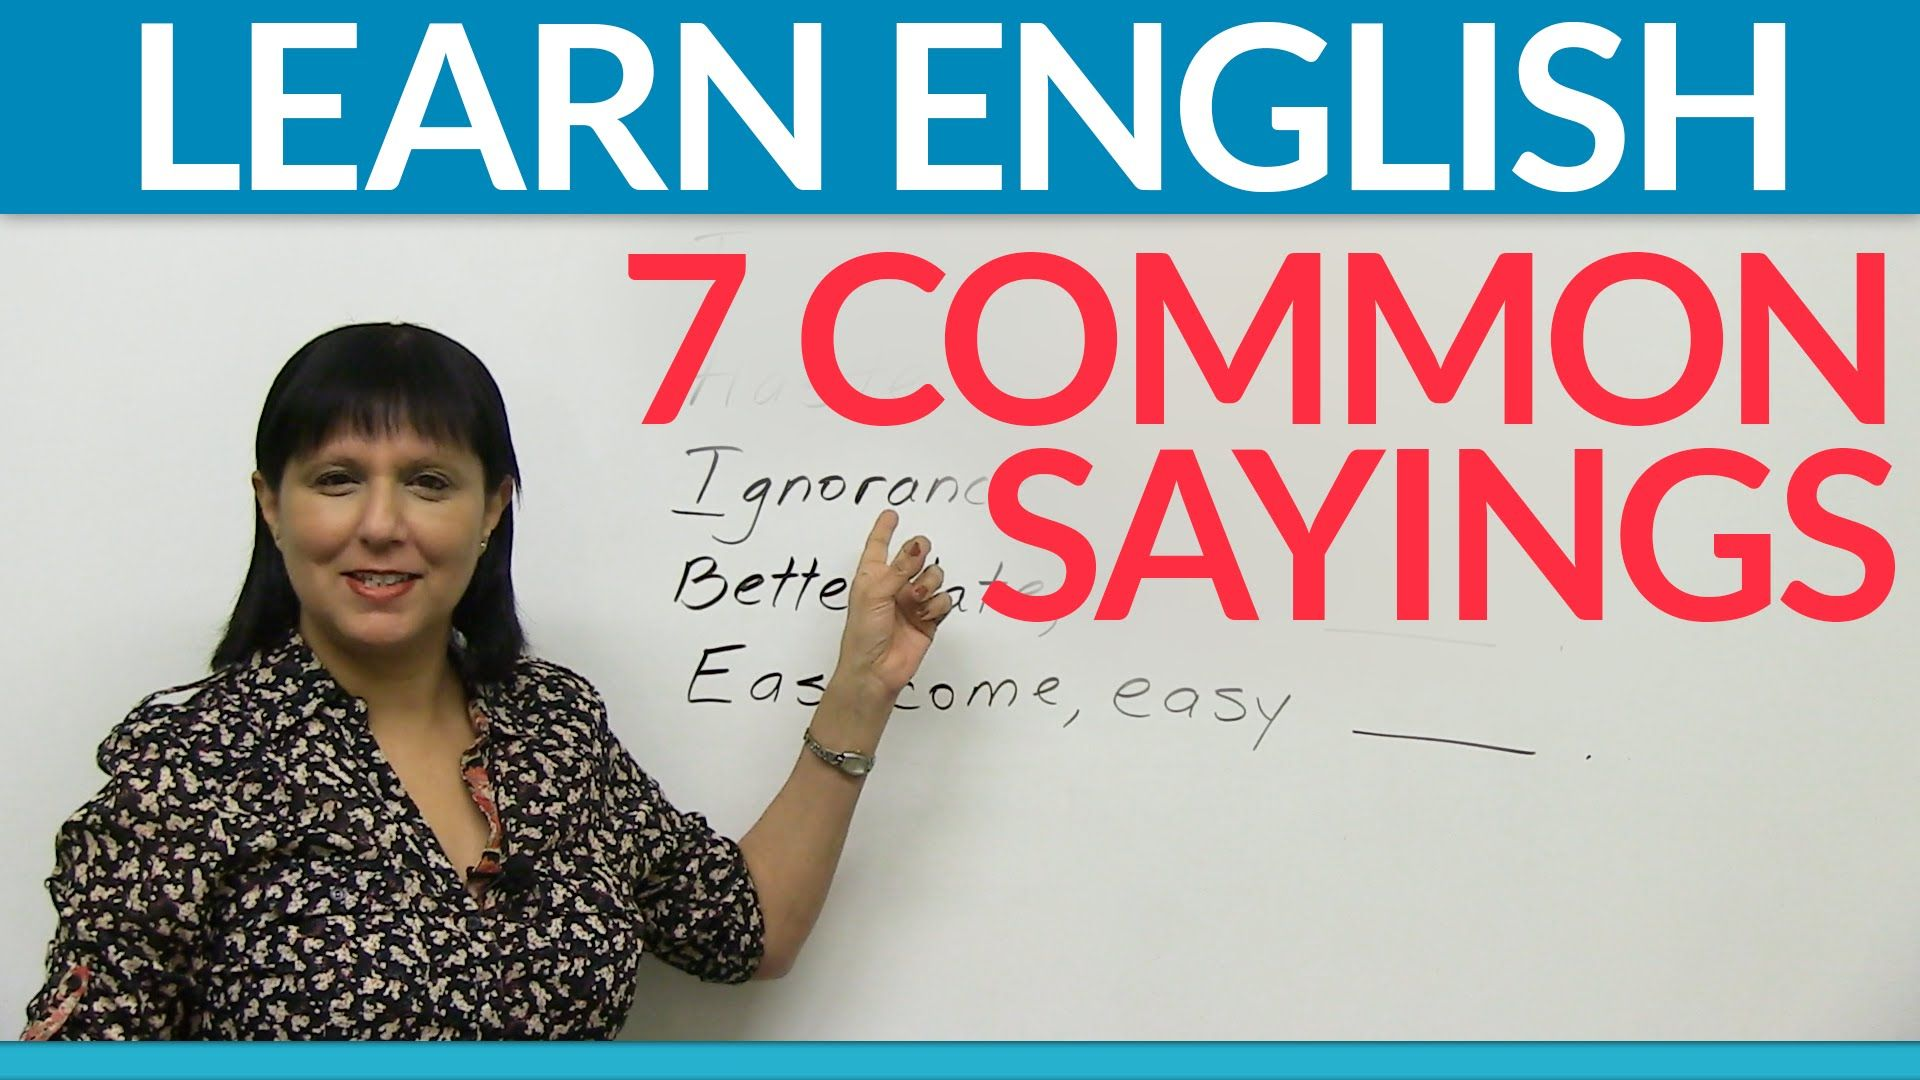 What Are Proverbs 7 Common Sayings In English